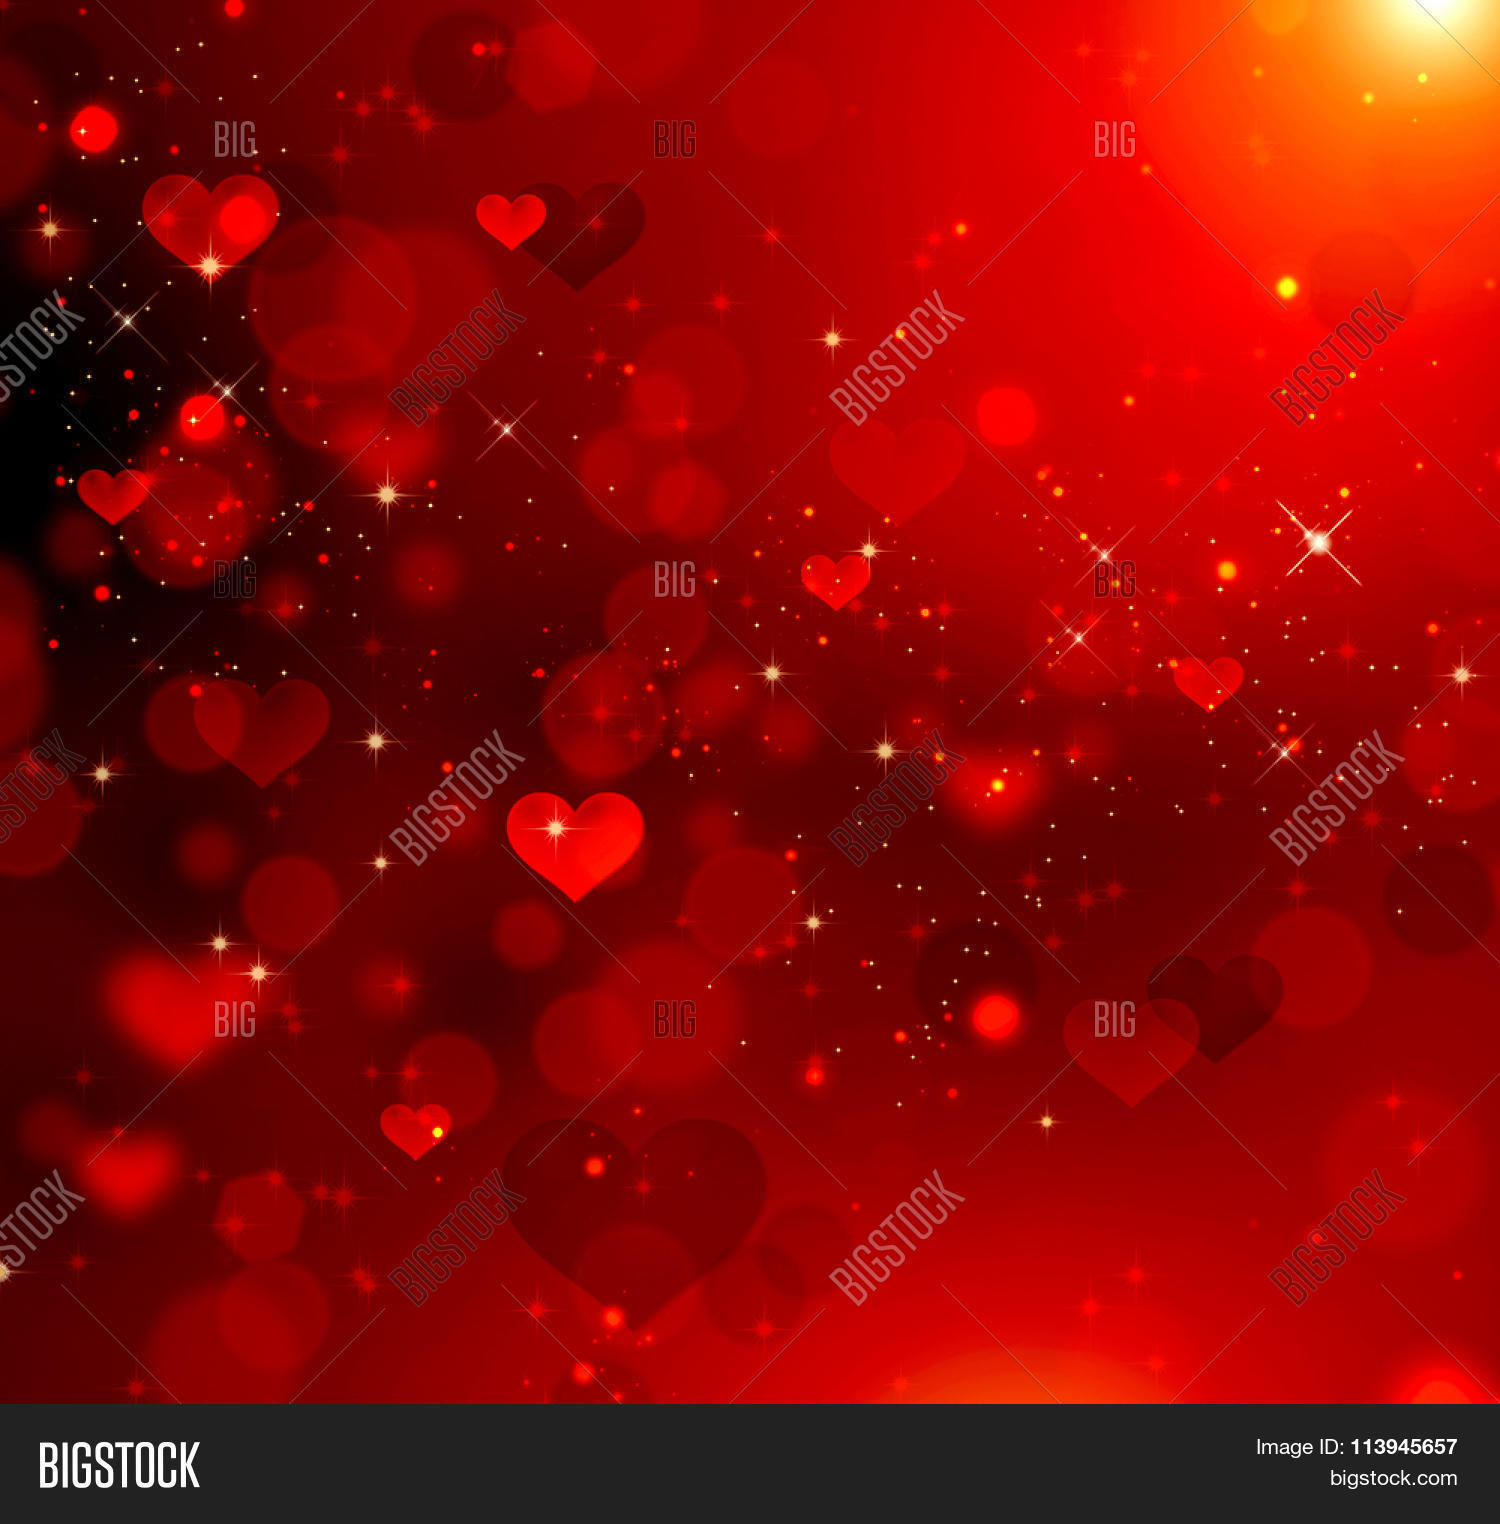 Valentines Day Wallpaper: Valentine Hearts Abstract Red Image & Photo